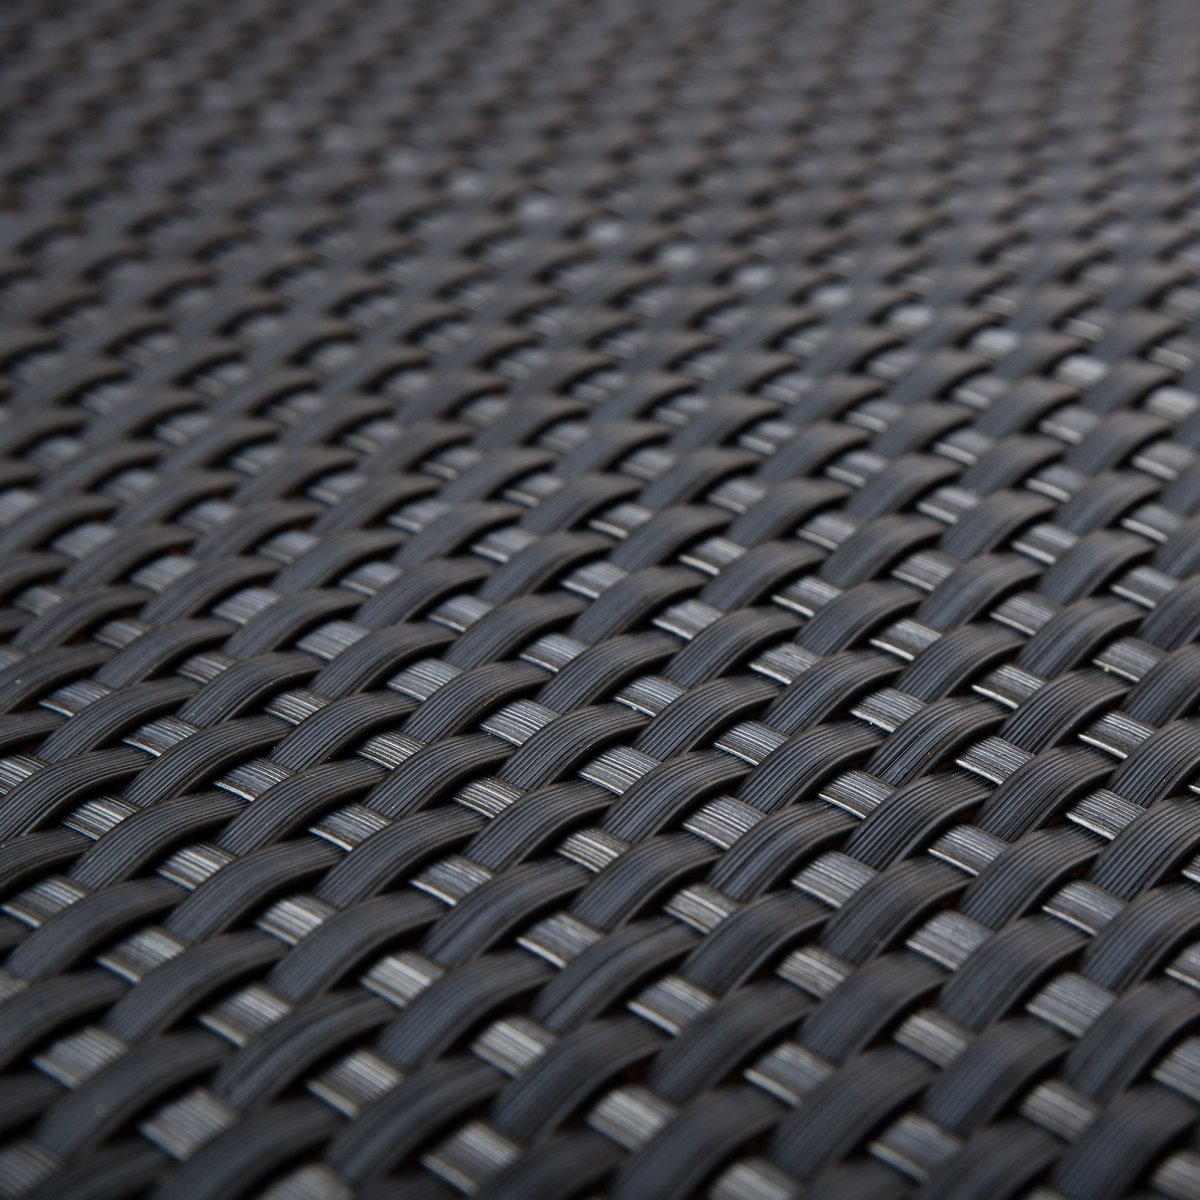 Polyethylene Rattan Patio Privacy Screen, Balcony Covering, Anthracite, 0.9 m Wide, Sold by the Metre Siesta Garden